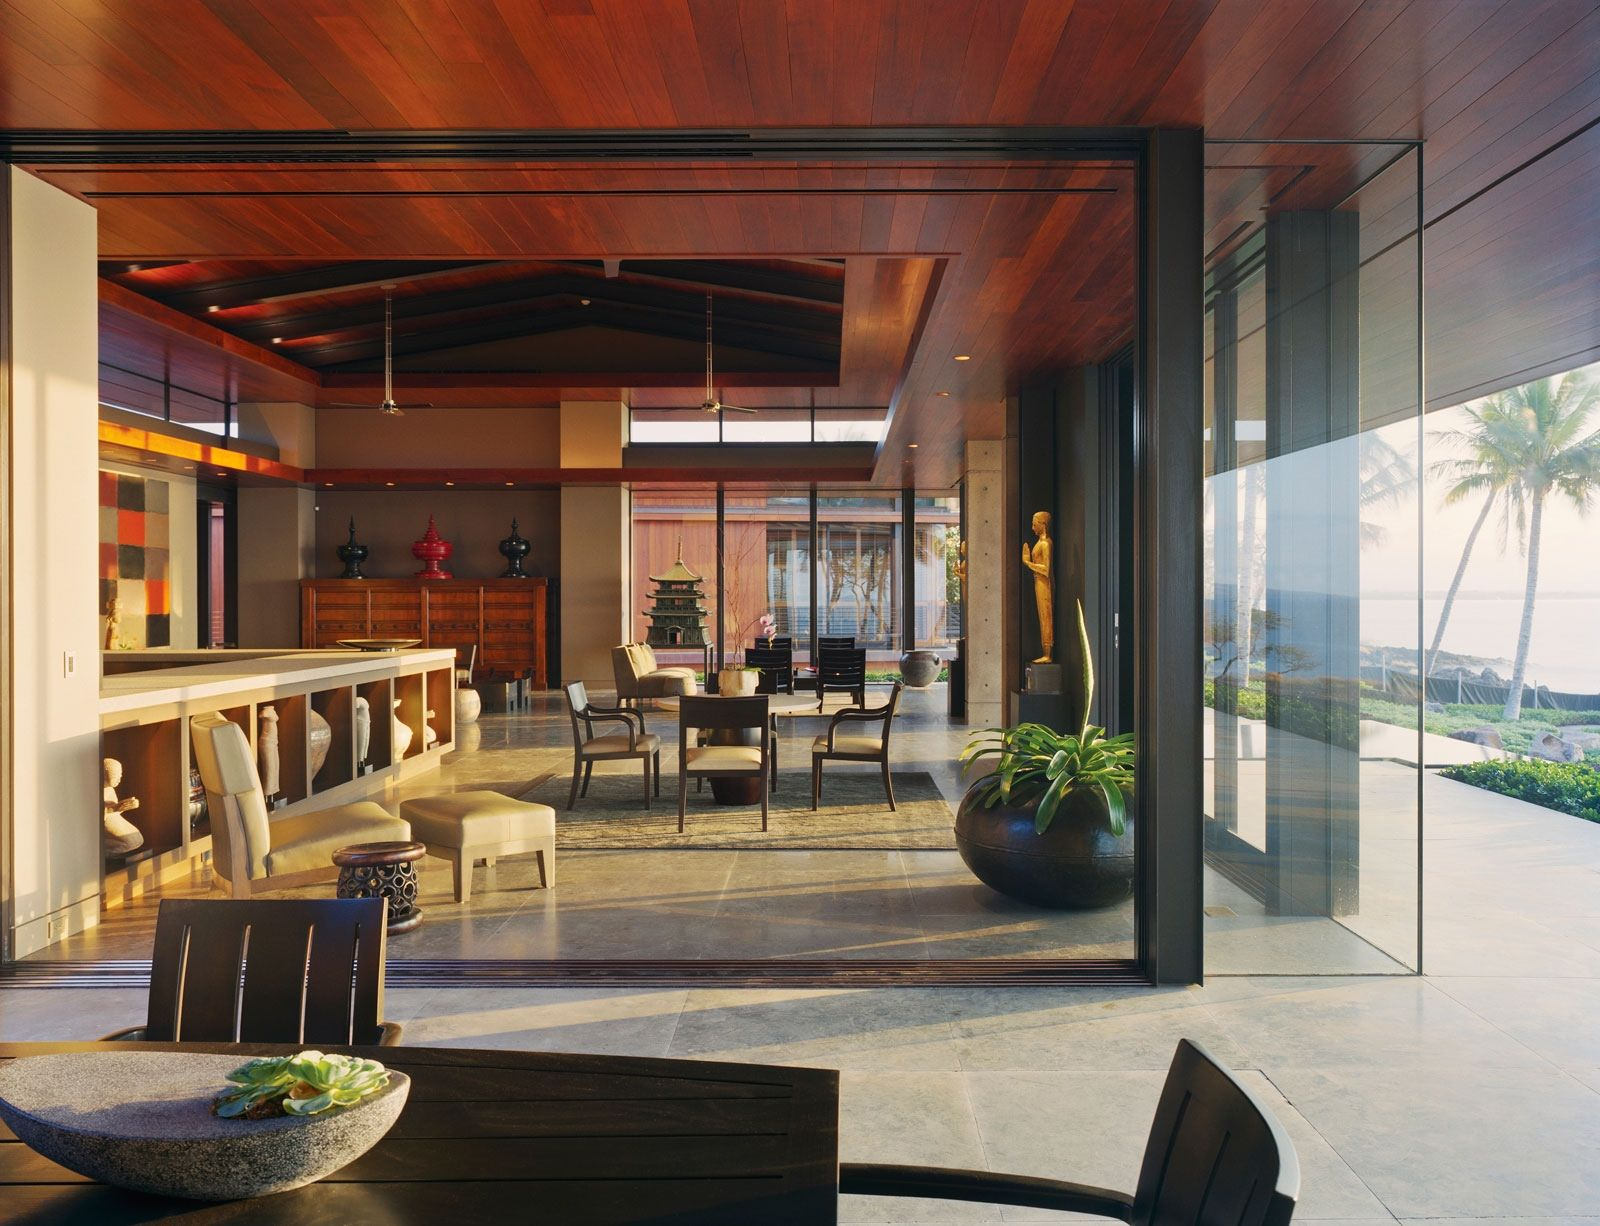 ... Ocean House in Hawaii by Olson Kundig Architects  HomeDSGN, a daily  source for inspiration and fresh ideas on interior design and home  decoration.